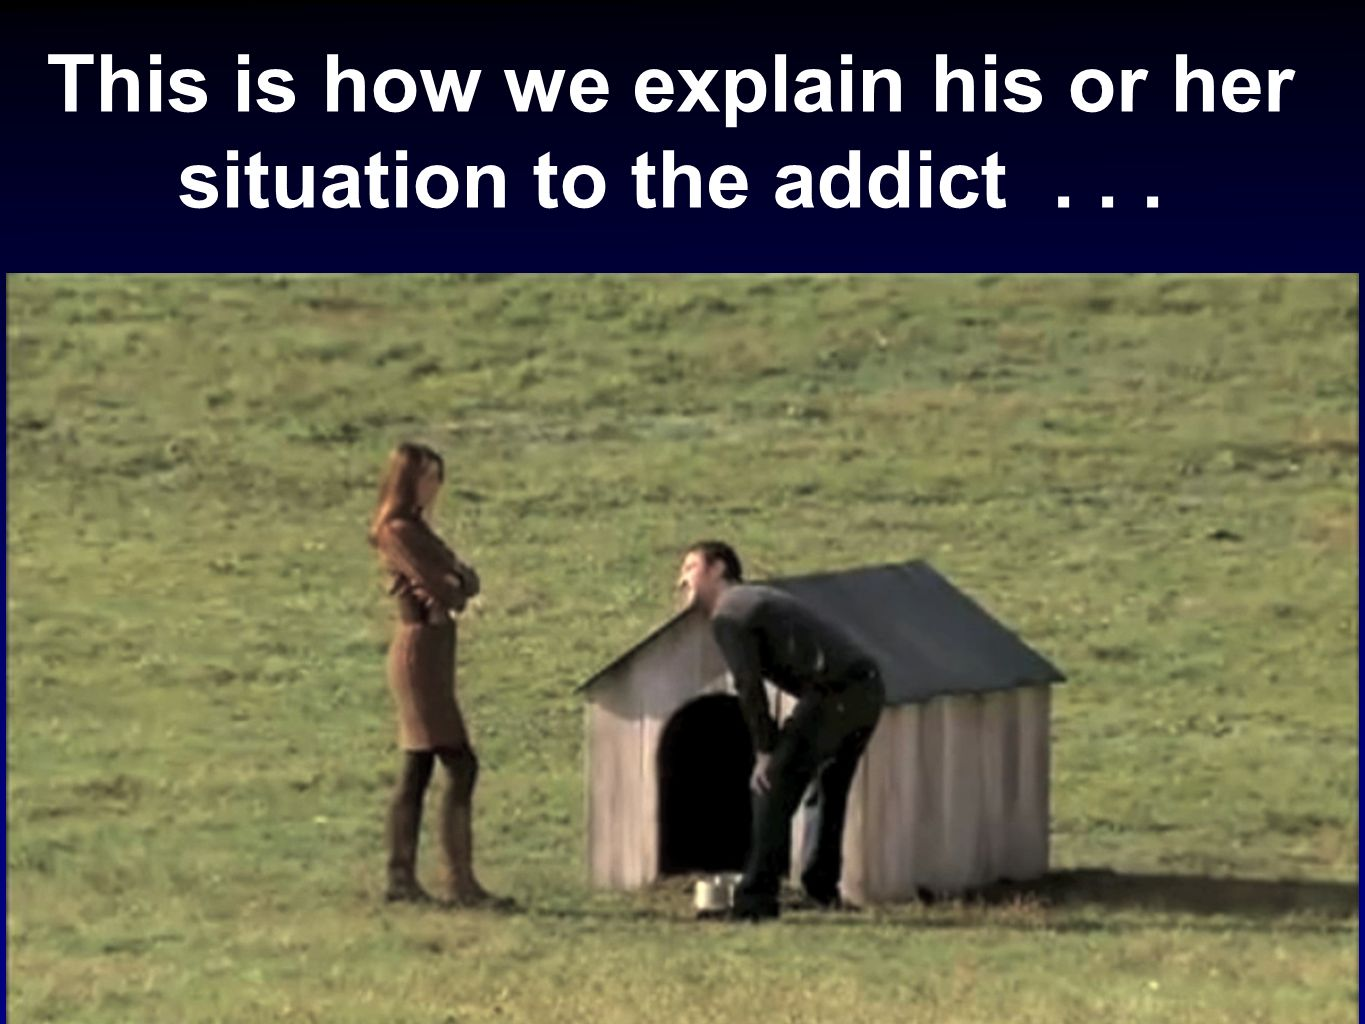 This is how we explain his or her situation to the addict . . .